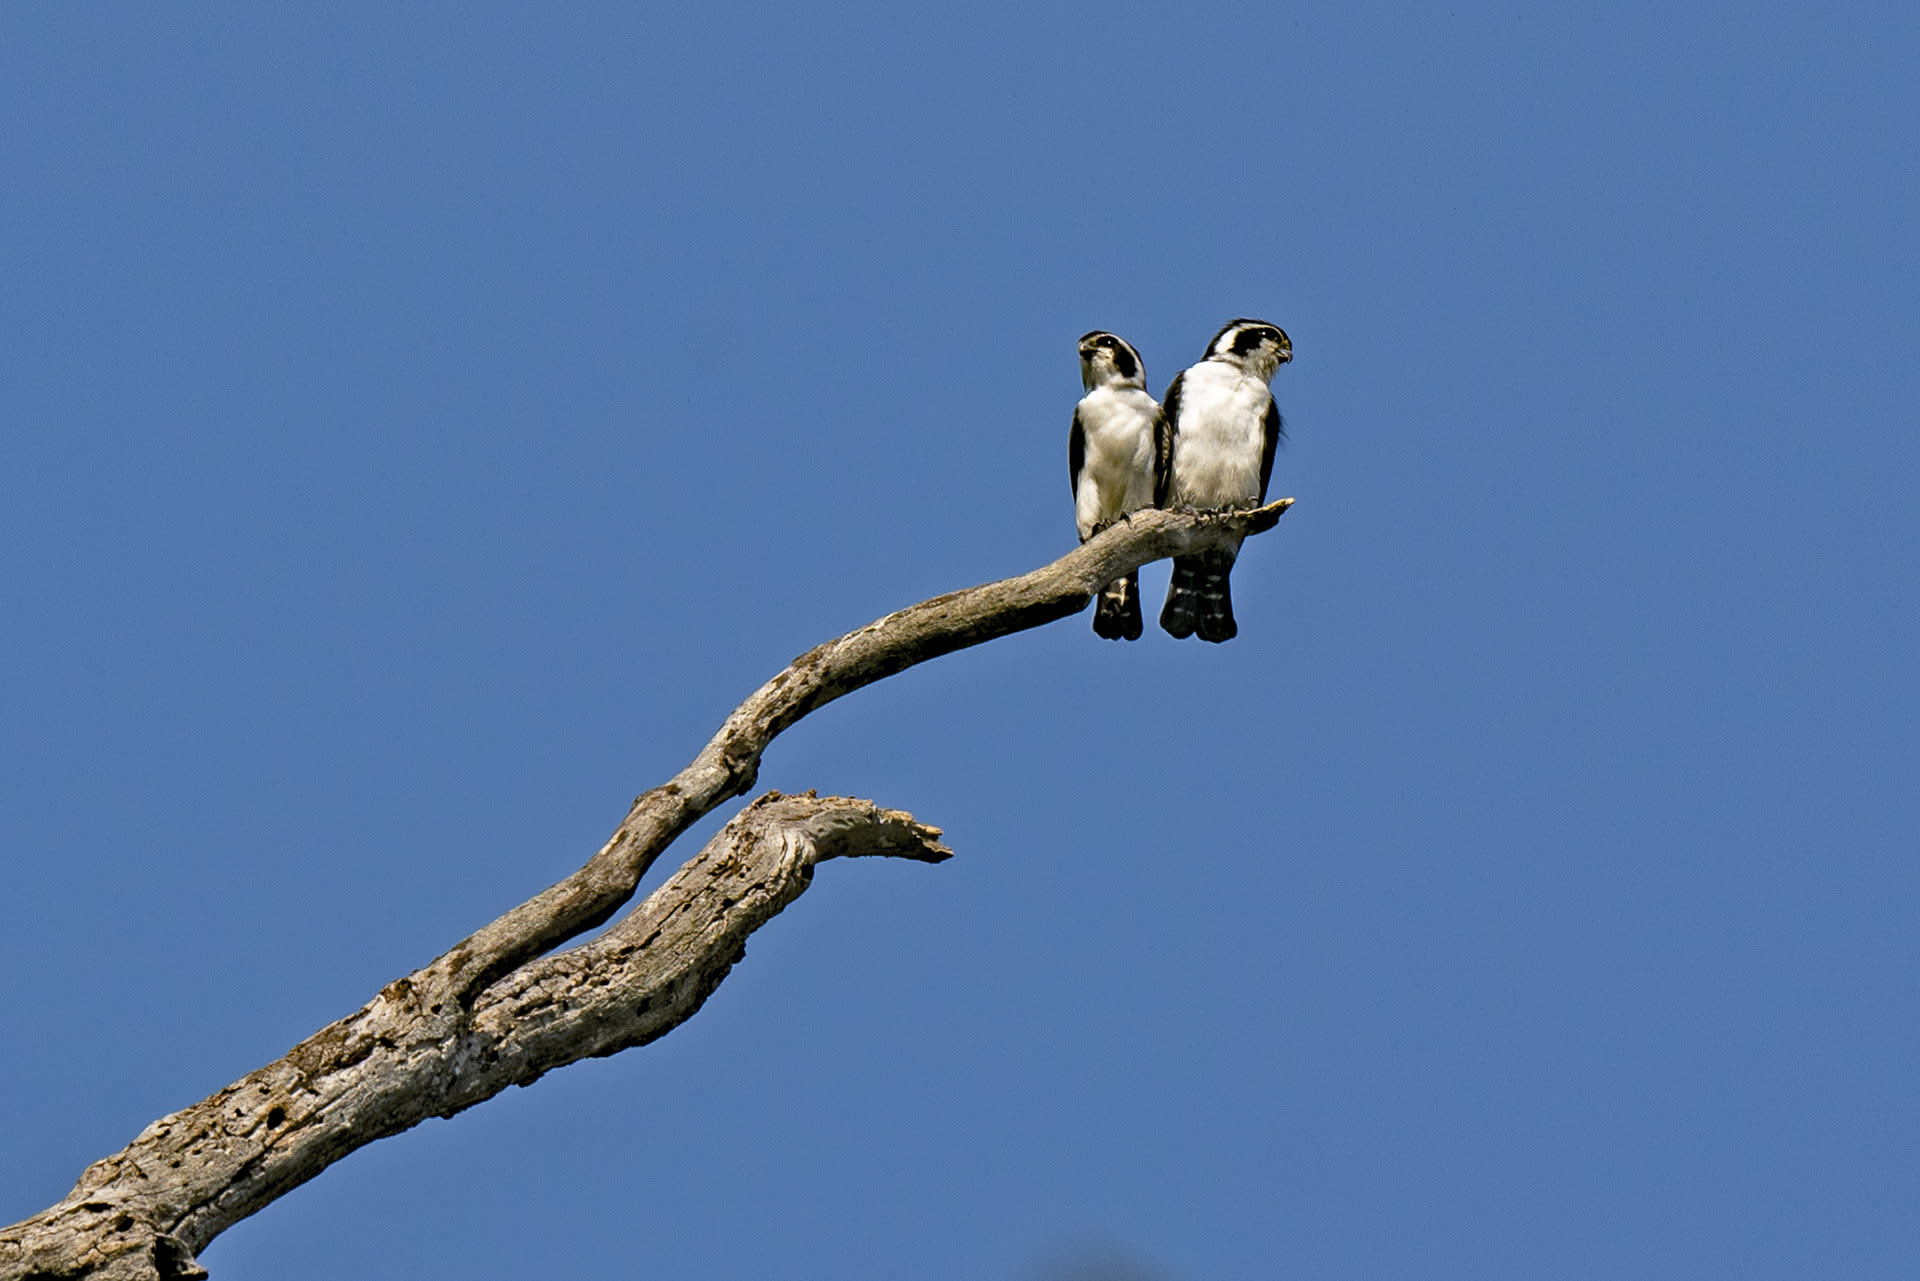 Pied falconets (Microhierax melanoleucos) are another Himalayan species that inhabit the foothills of the mountain range in Arunachal Pradesh. Studies in Namdapha report an endearing courtship ritual, where males present females with leaves, presumably to indicate his commitment to nest-building. During breeding, the birds occupy holes in trees made by barbets and woodpeckers, laid with organic material foraged from the forest.